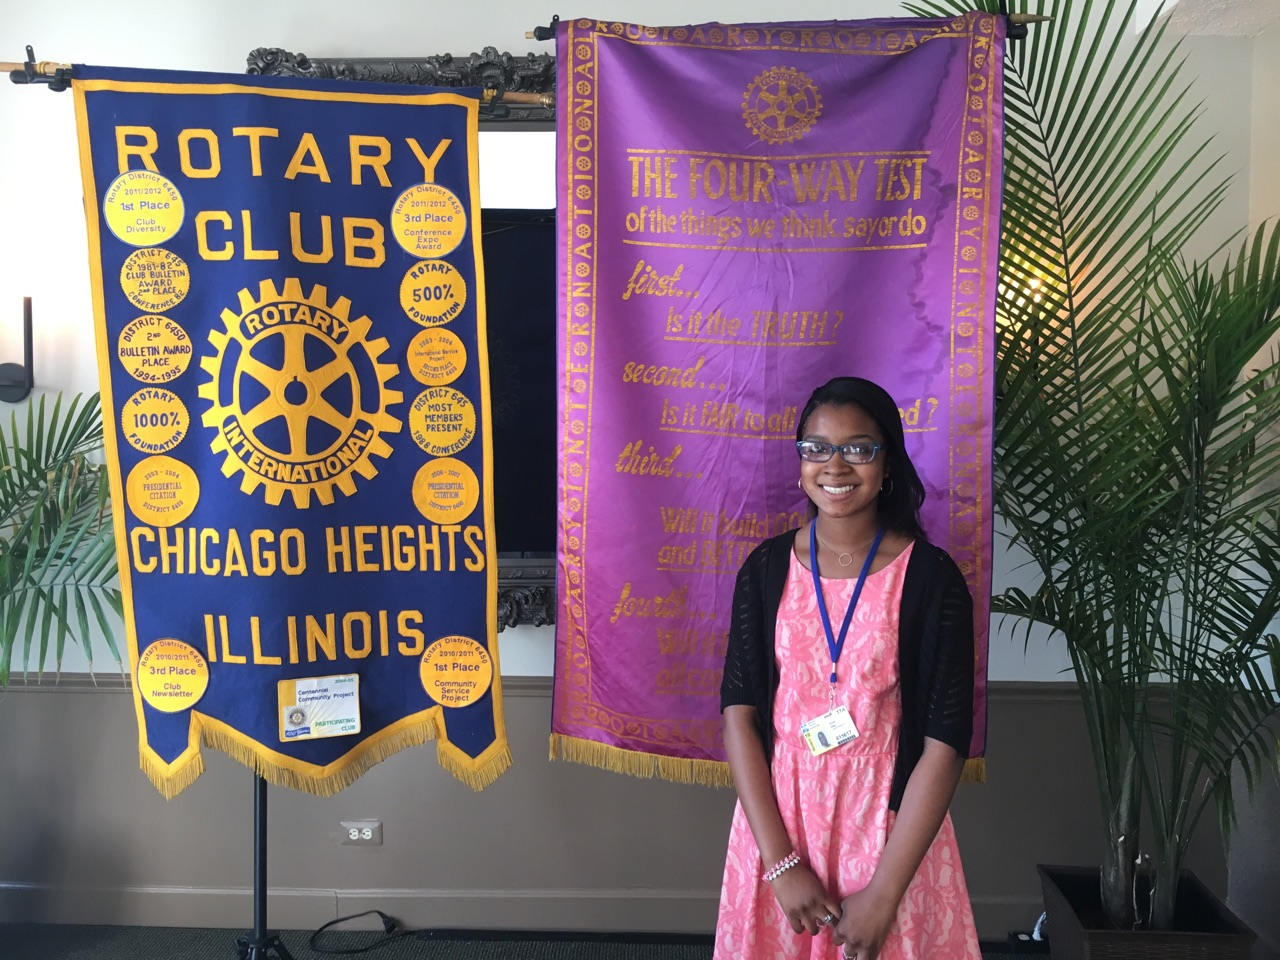 Chicago Heights Rotary Club: November Student of the Month